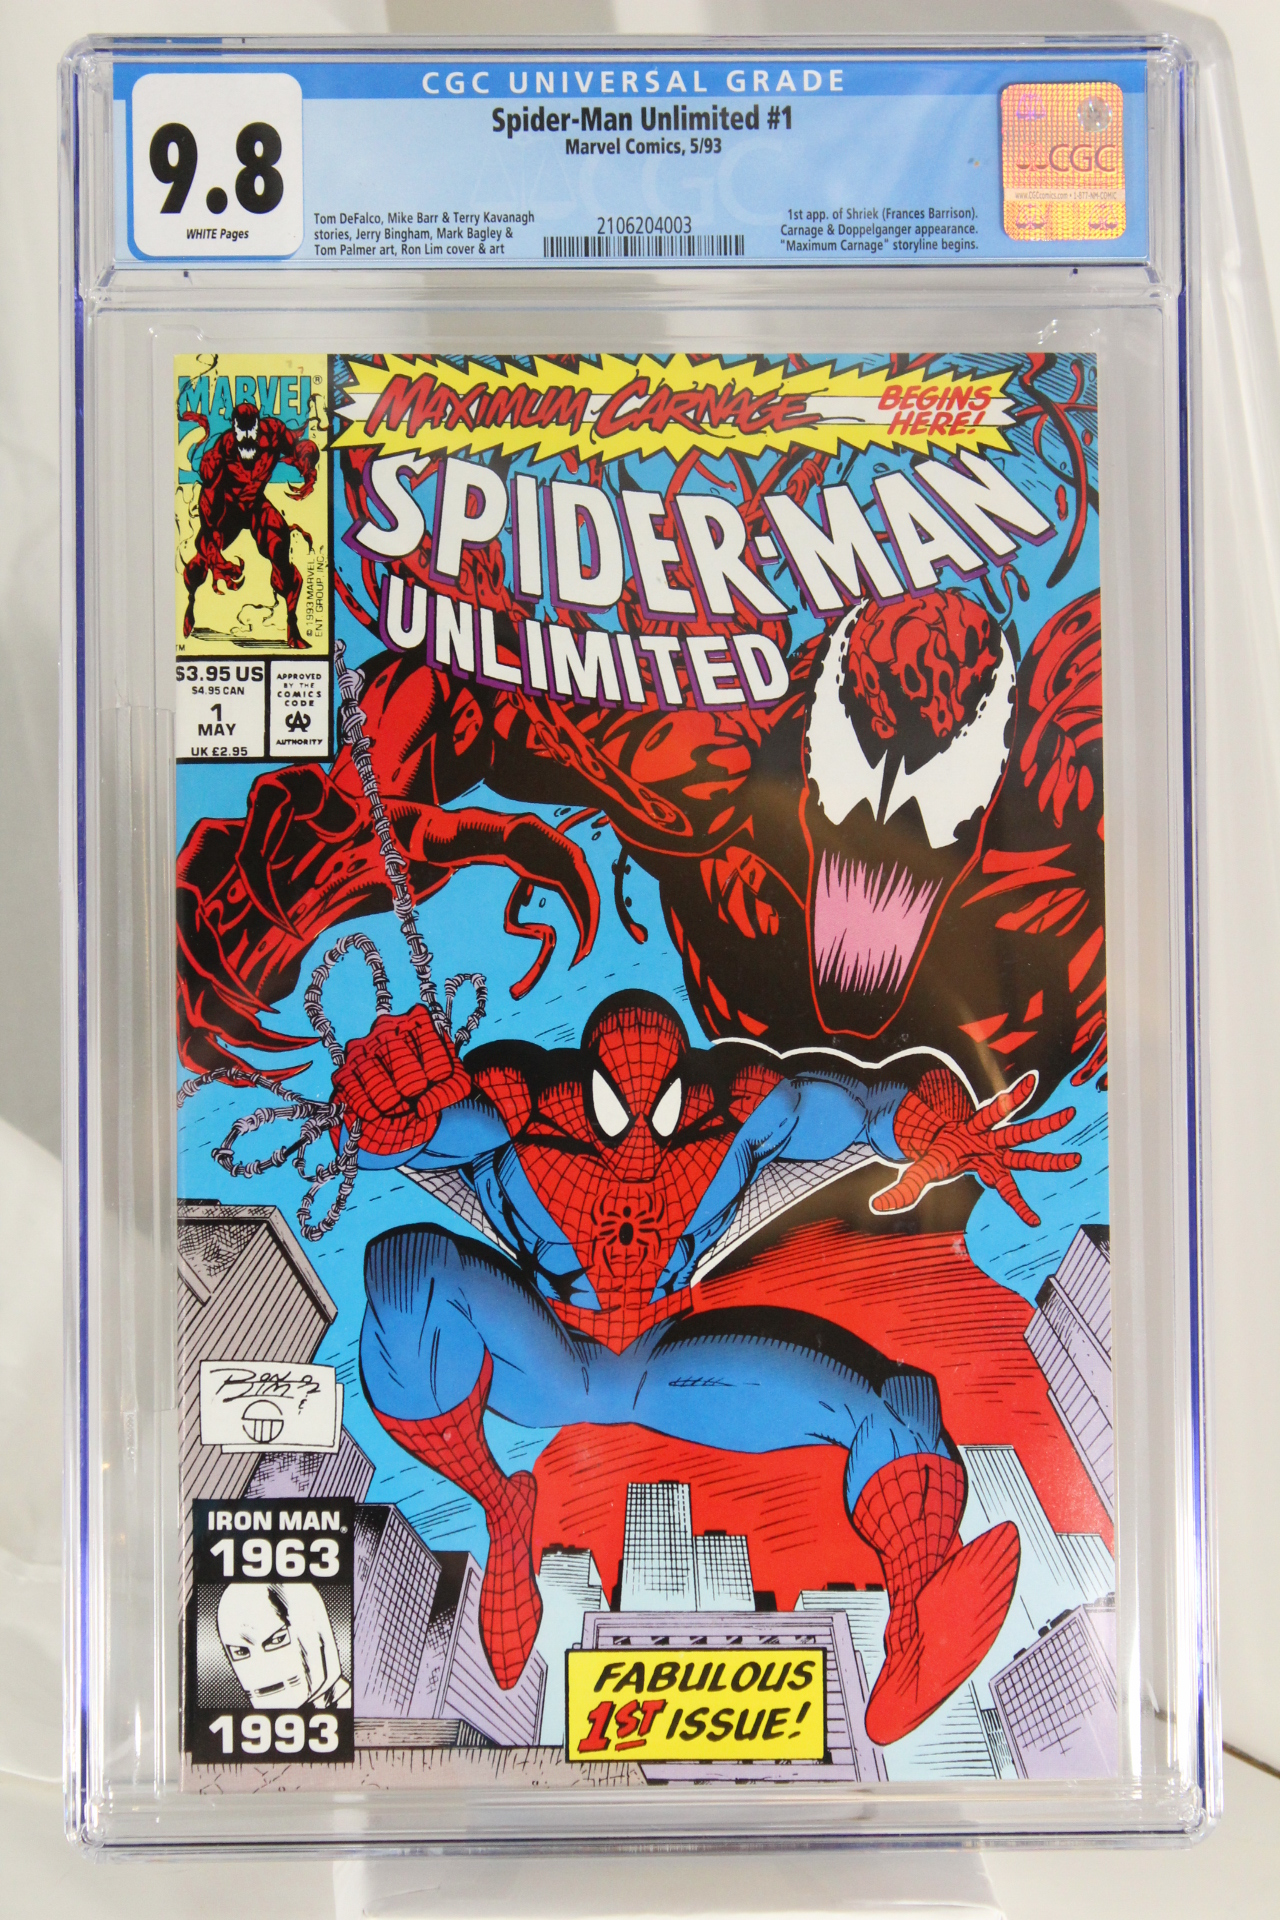 Spider-Man Unlimited #1 - CGC 9.8 - 1st app. of Shriek (Frances Barrison).